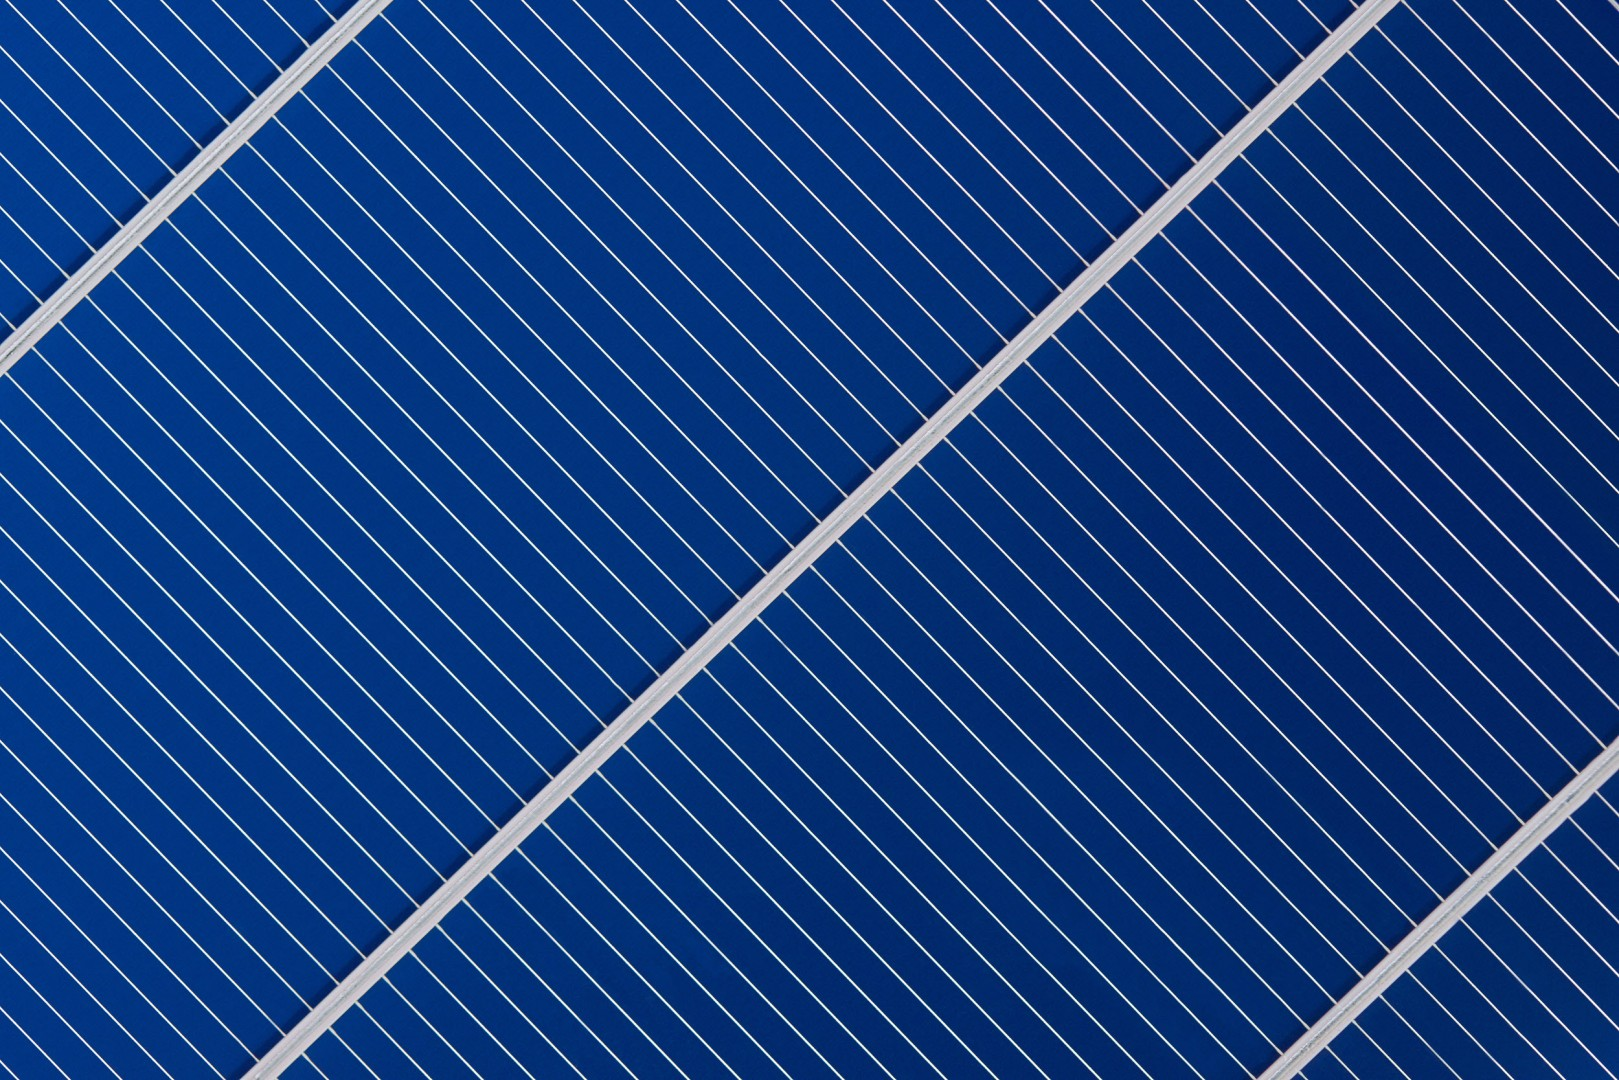 Heraeus Photovoltaics has established a manufacturing and sales partnership with China-based PV conductive tape specialist, Suzhou Yubang New Material Co (YourBest) for Heraeus' 'Selectively Coated Ribbon' (SCR Ribbon) technology. Image: Heraeus